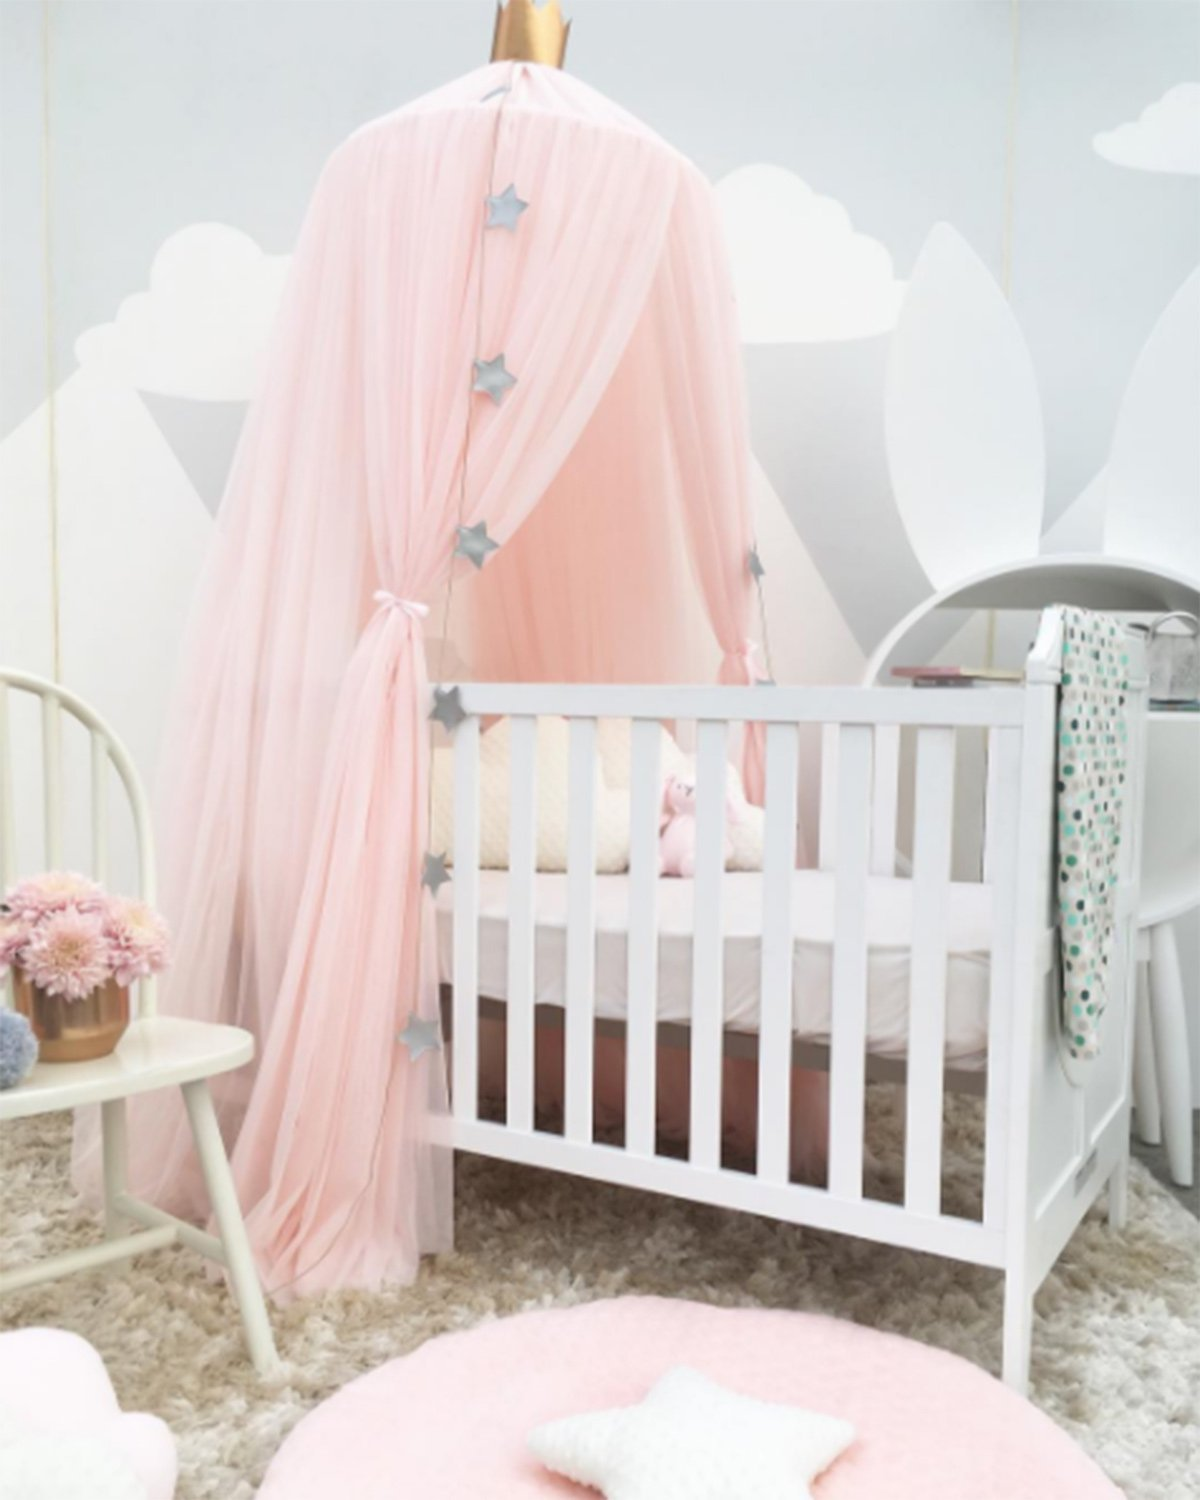 Kids Baby Princess Mosquito Net Bed Canopy with Round Lace Dome Children Playing Reading canopy Tent Netting Curtains Khaki